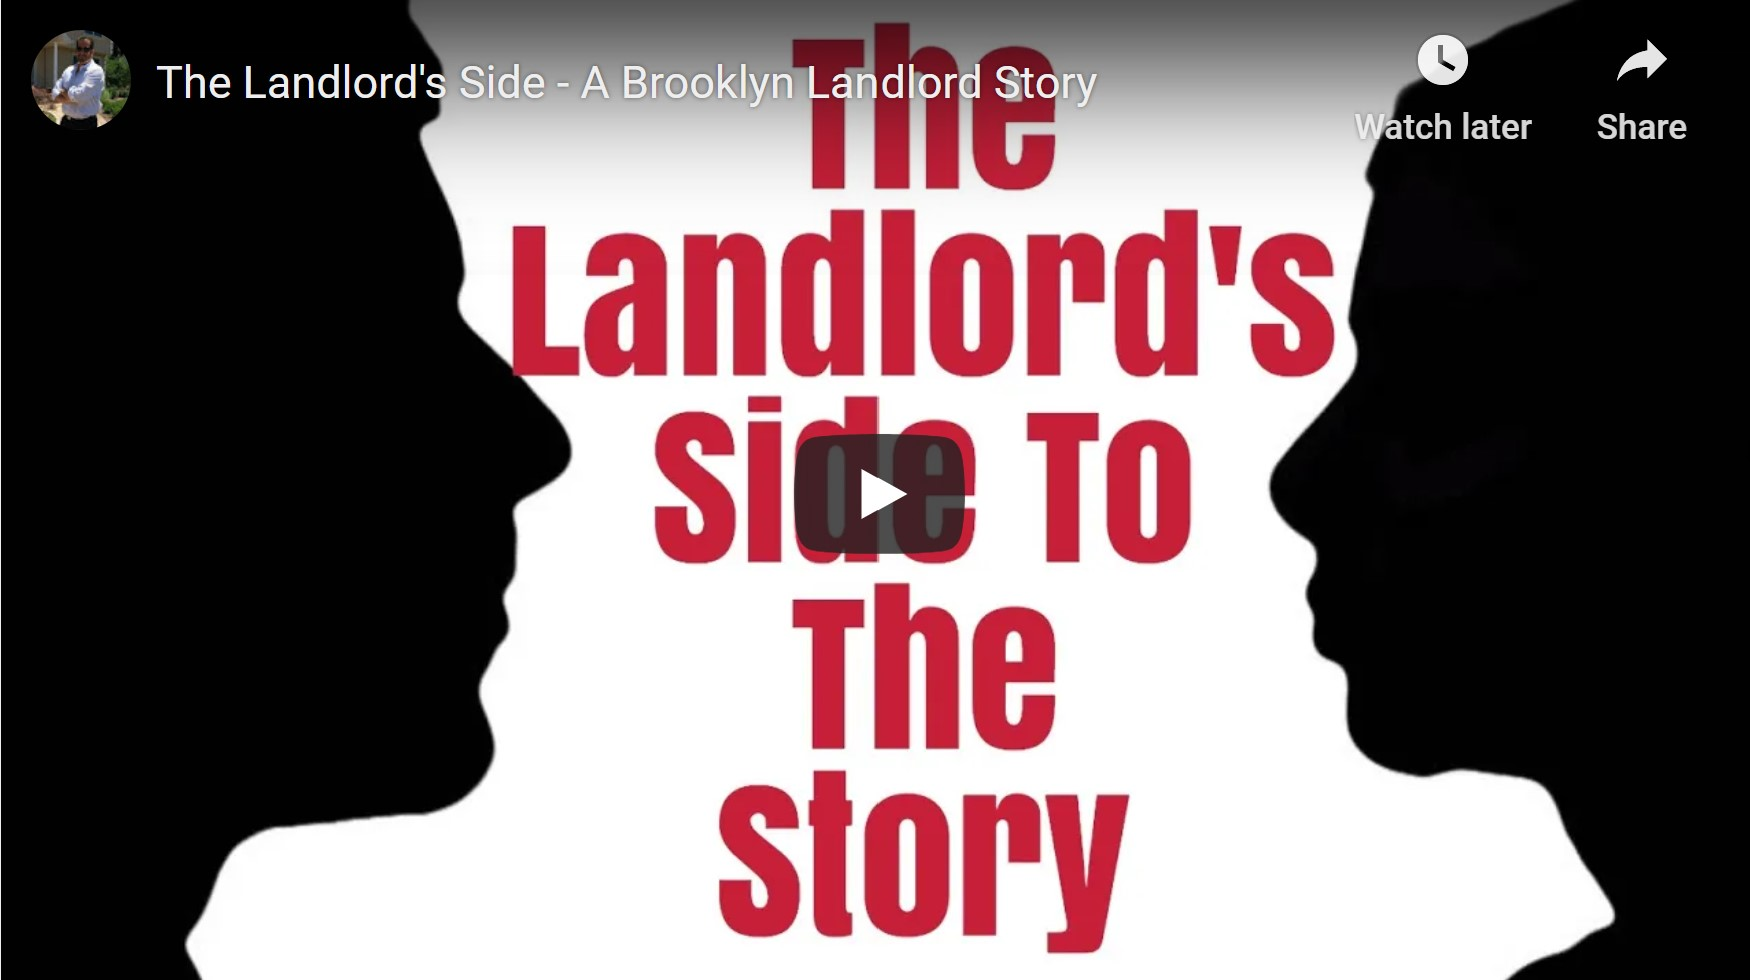 A Brooklyn Landlords Story